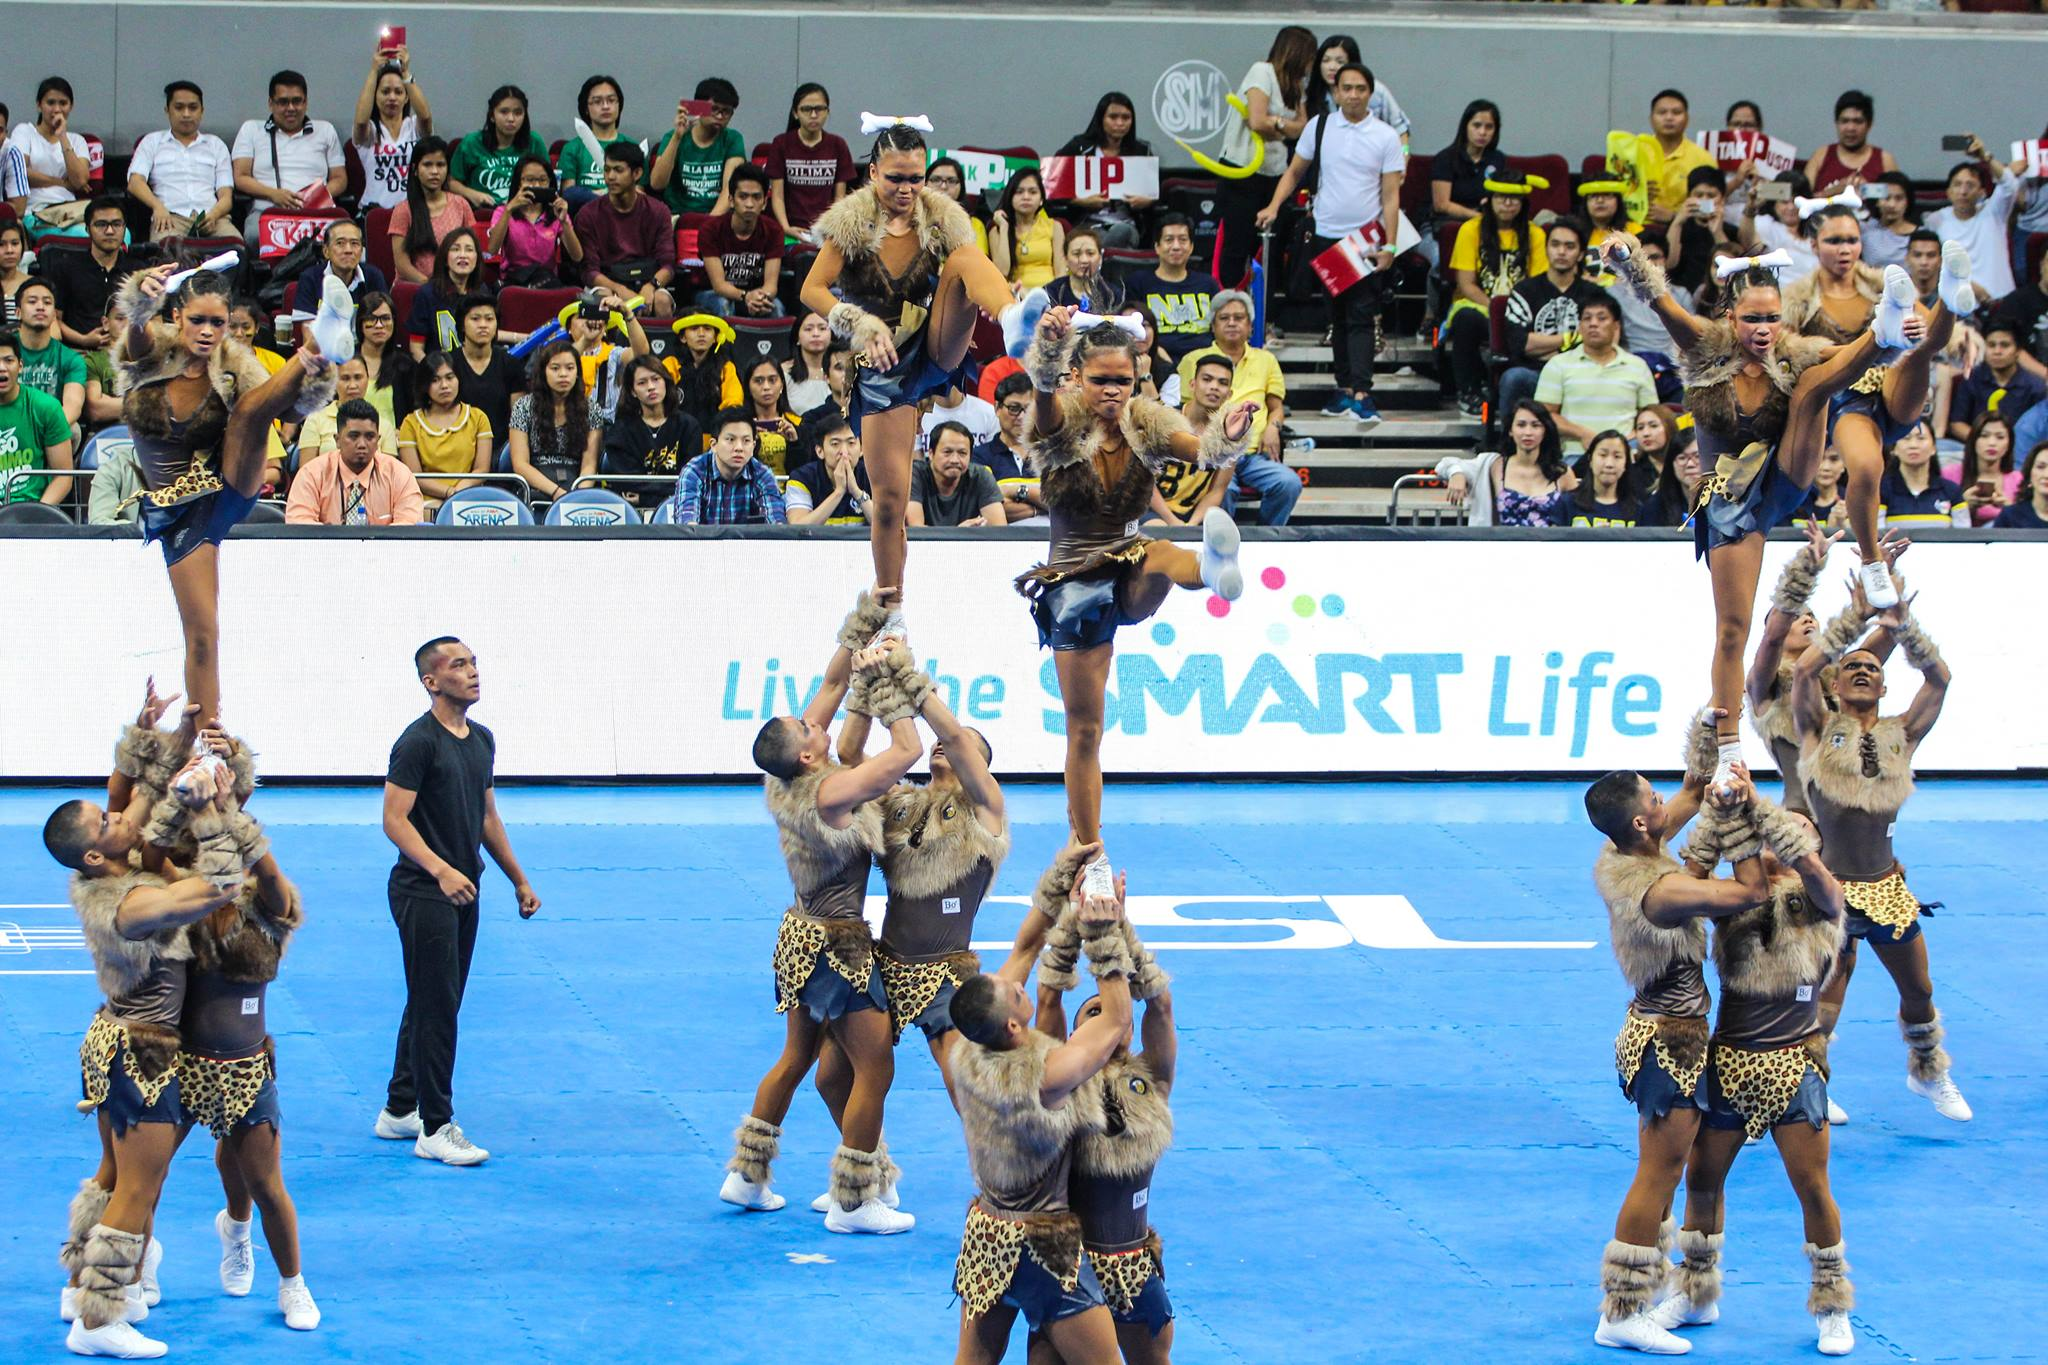 NU bagged their three-consecutive championship titles in the UAAP Cheerdance competition. Judges gave them 688 points.